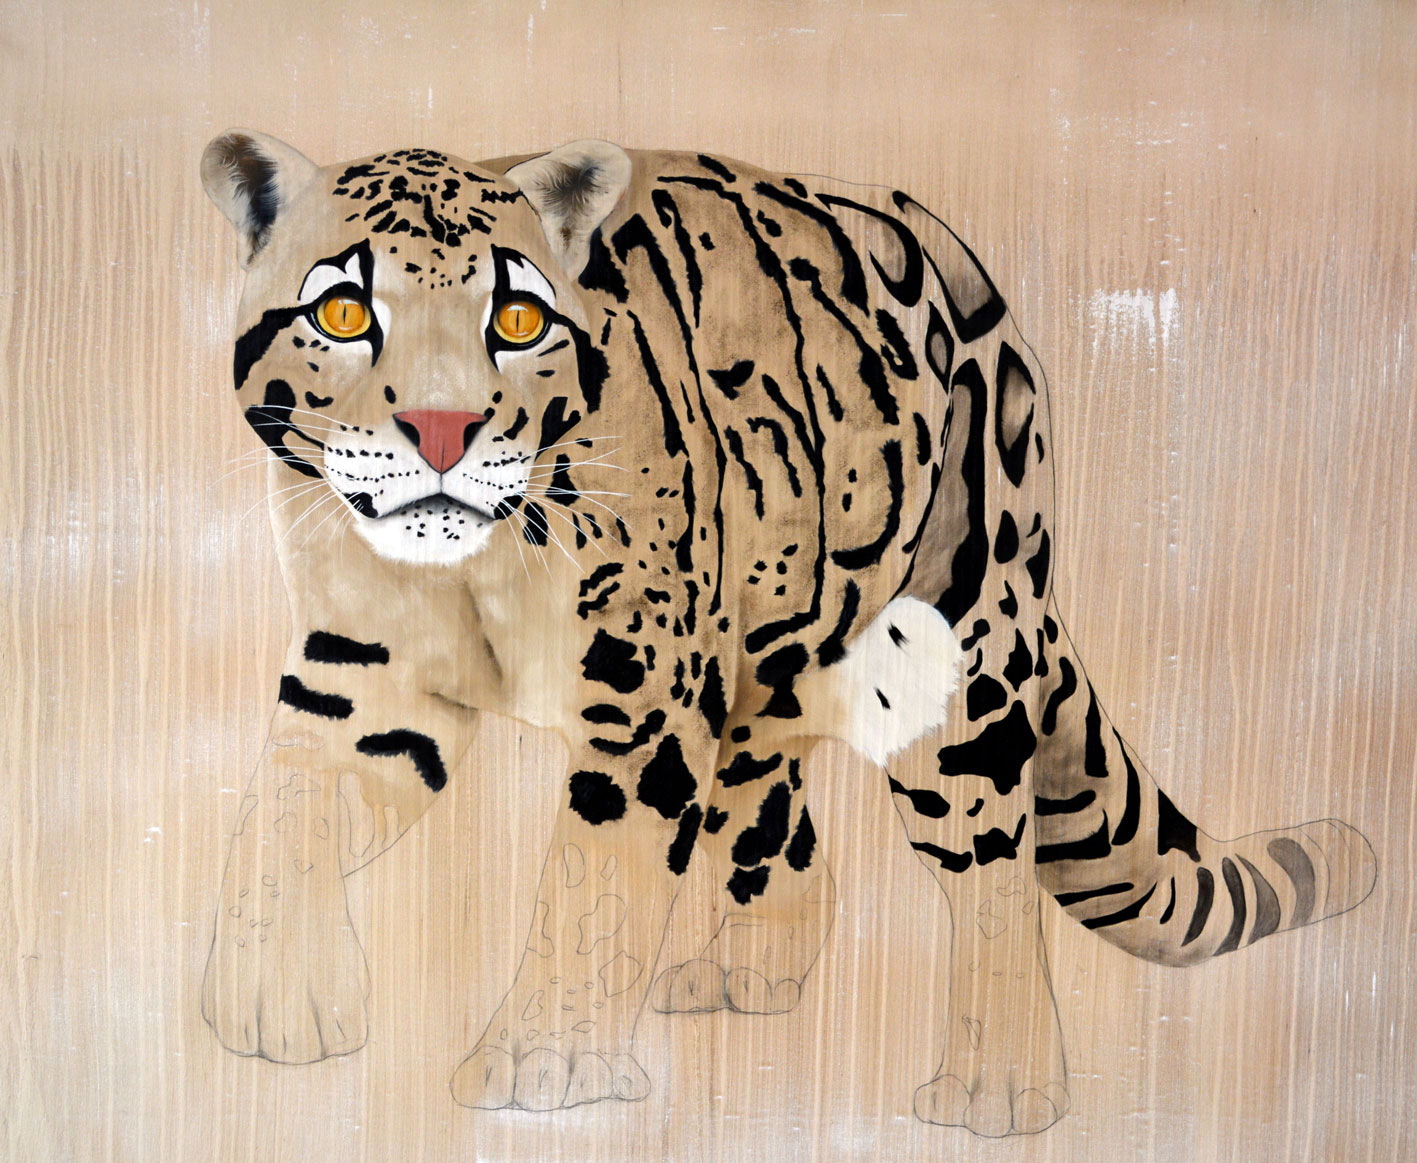 PANTHÈRE-NÉBULEUSE clouded-leopard-neofelis-nebulosa-delete-threatened-endangered-extinction Thierry Bisch painter animals painting art decoration hotel design interior luxury nature biodiversity conservation